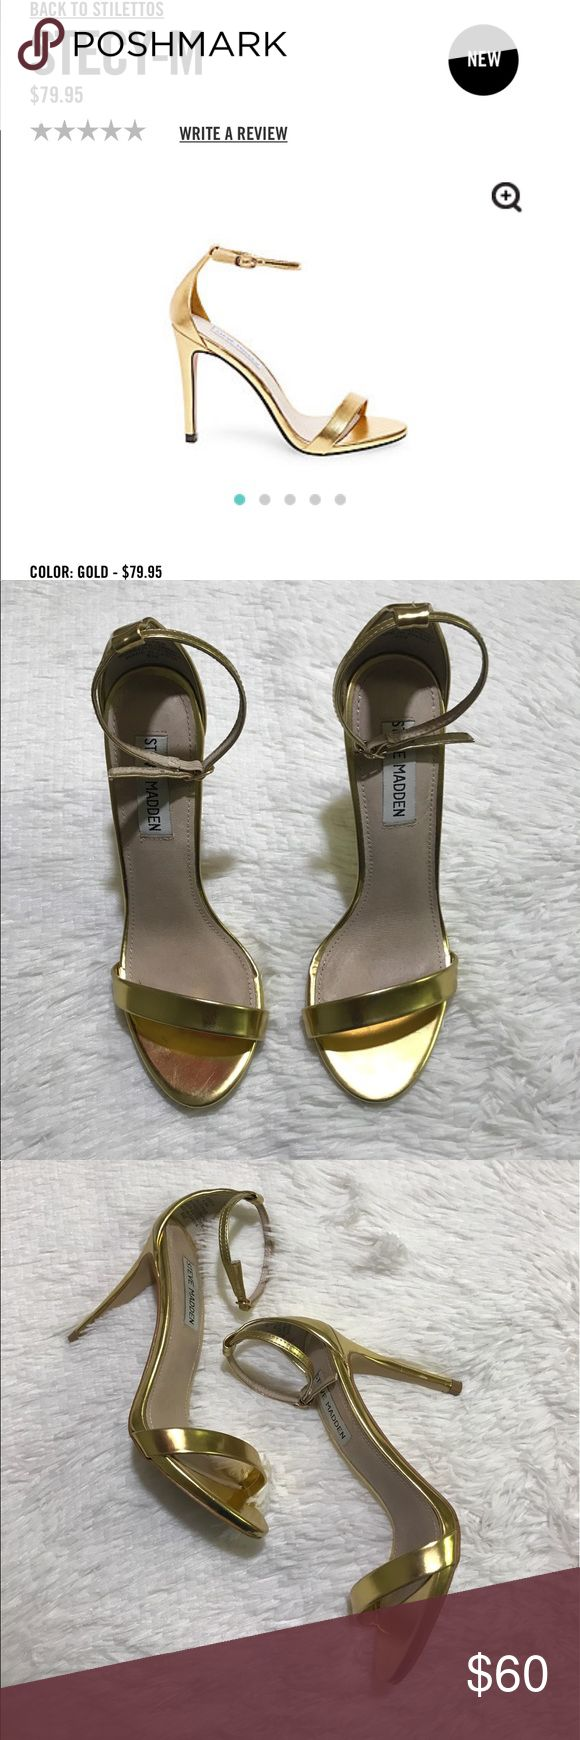 Gold ankle heels Meet STECY-M, your new go-to dress shoe!  Metallic surfaces elevate this super-simple yet perfectly proportioned stiletto sandal, lending both glamorous direction and versatility.  Man-made upper material Leather lining Man-made sole 4 inch heel height Steve Madden Shoes Heels